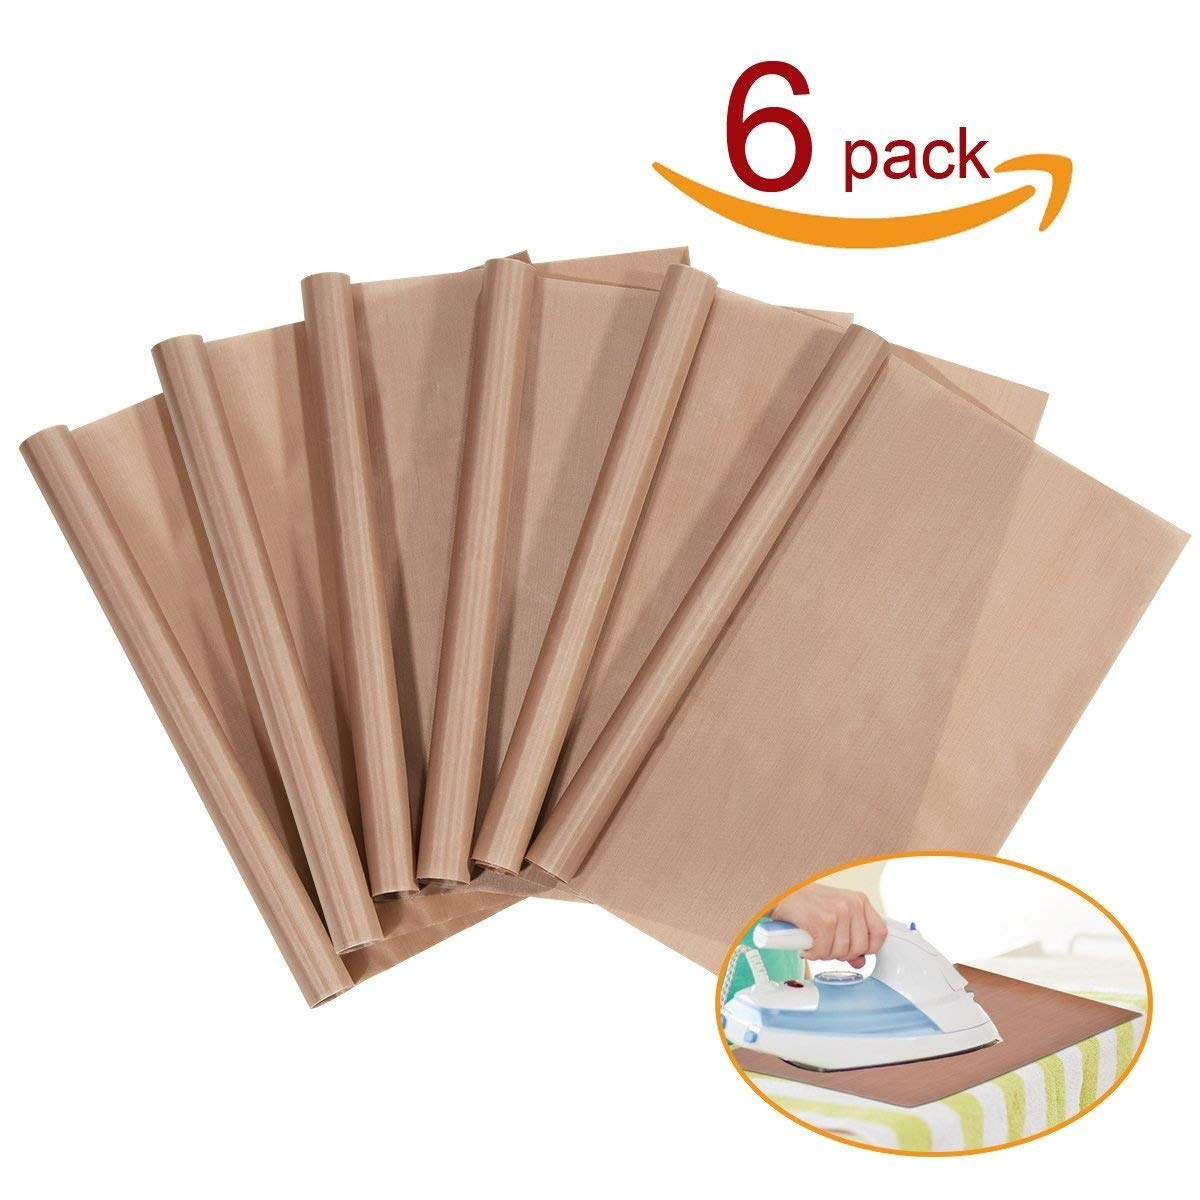 """Yesker YES-43 PTFE Teflon Press Transfers, 16 x 20"""" Heat Resistant Craft Sheet, 100% Non Stick Protects Iron and Work Area (6-Pack), Brown"""